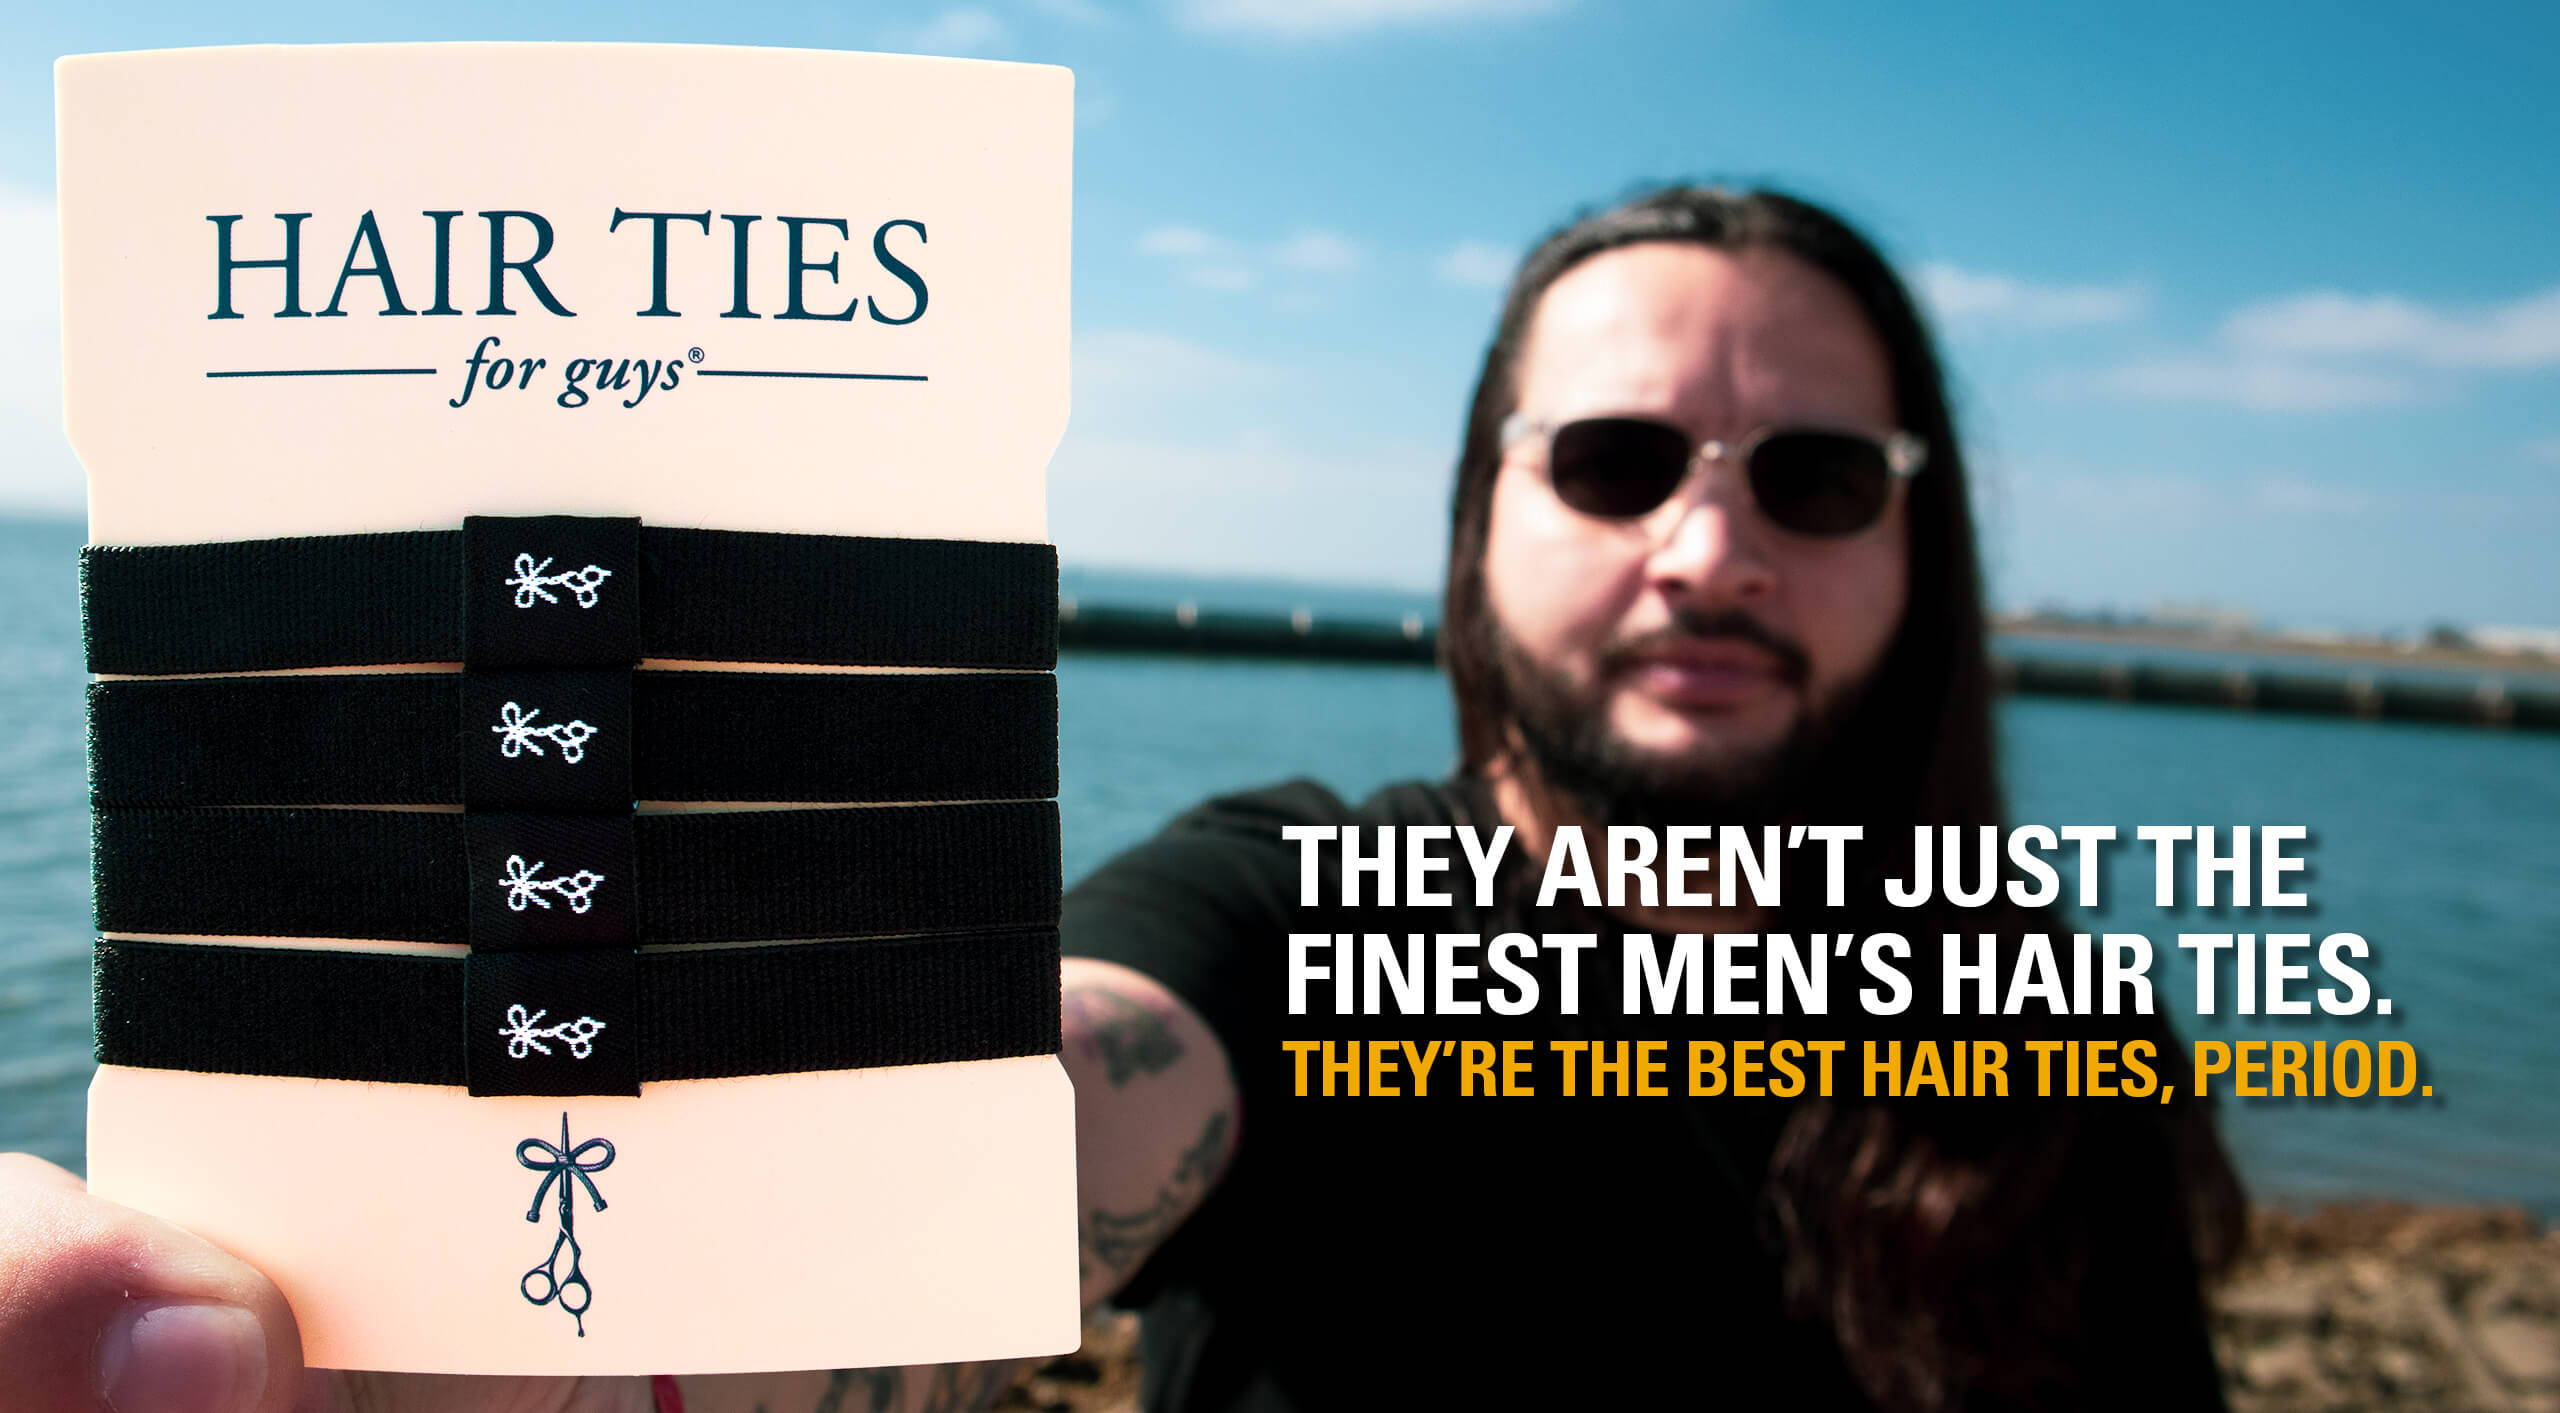 Hair Ties For Guys - The Black Ties